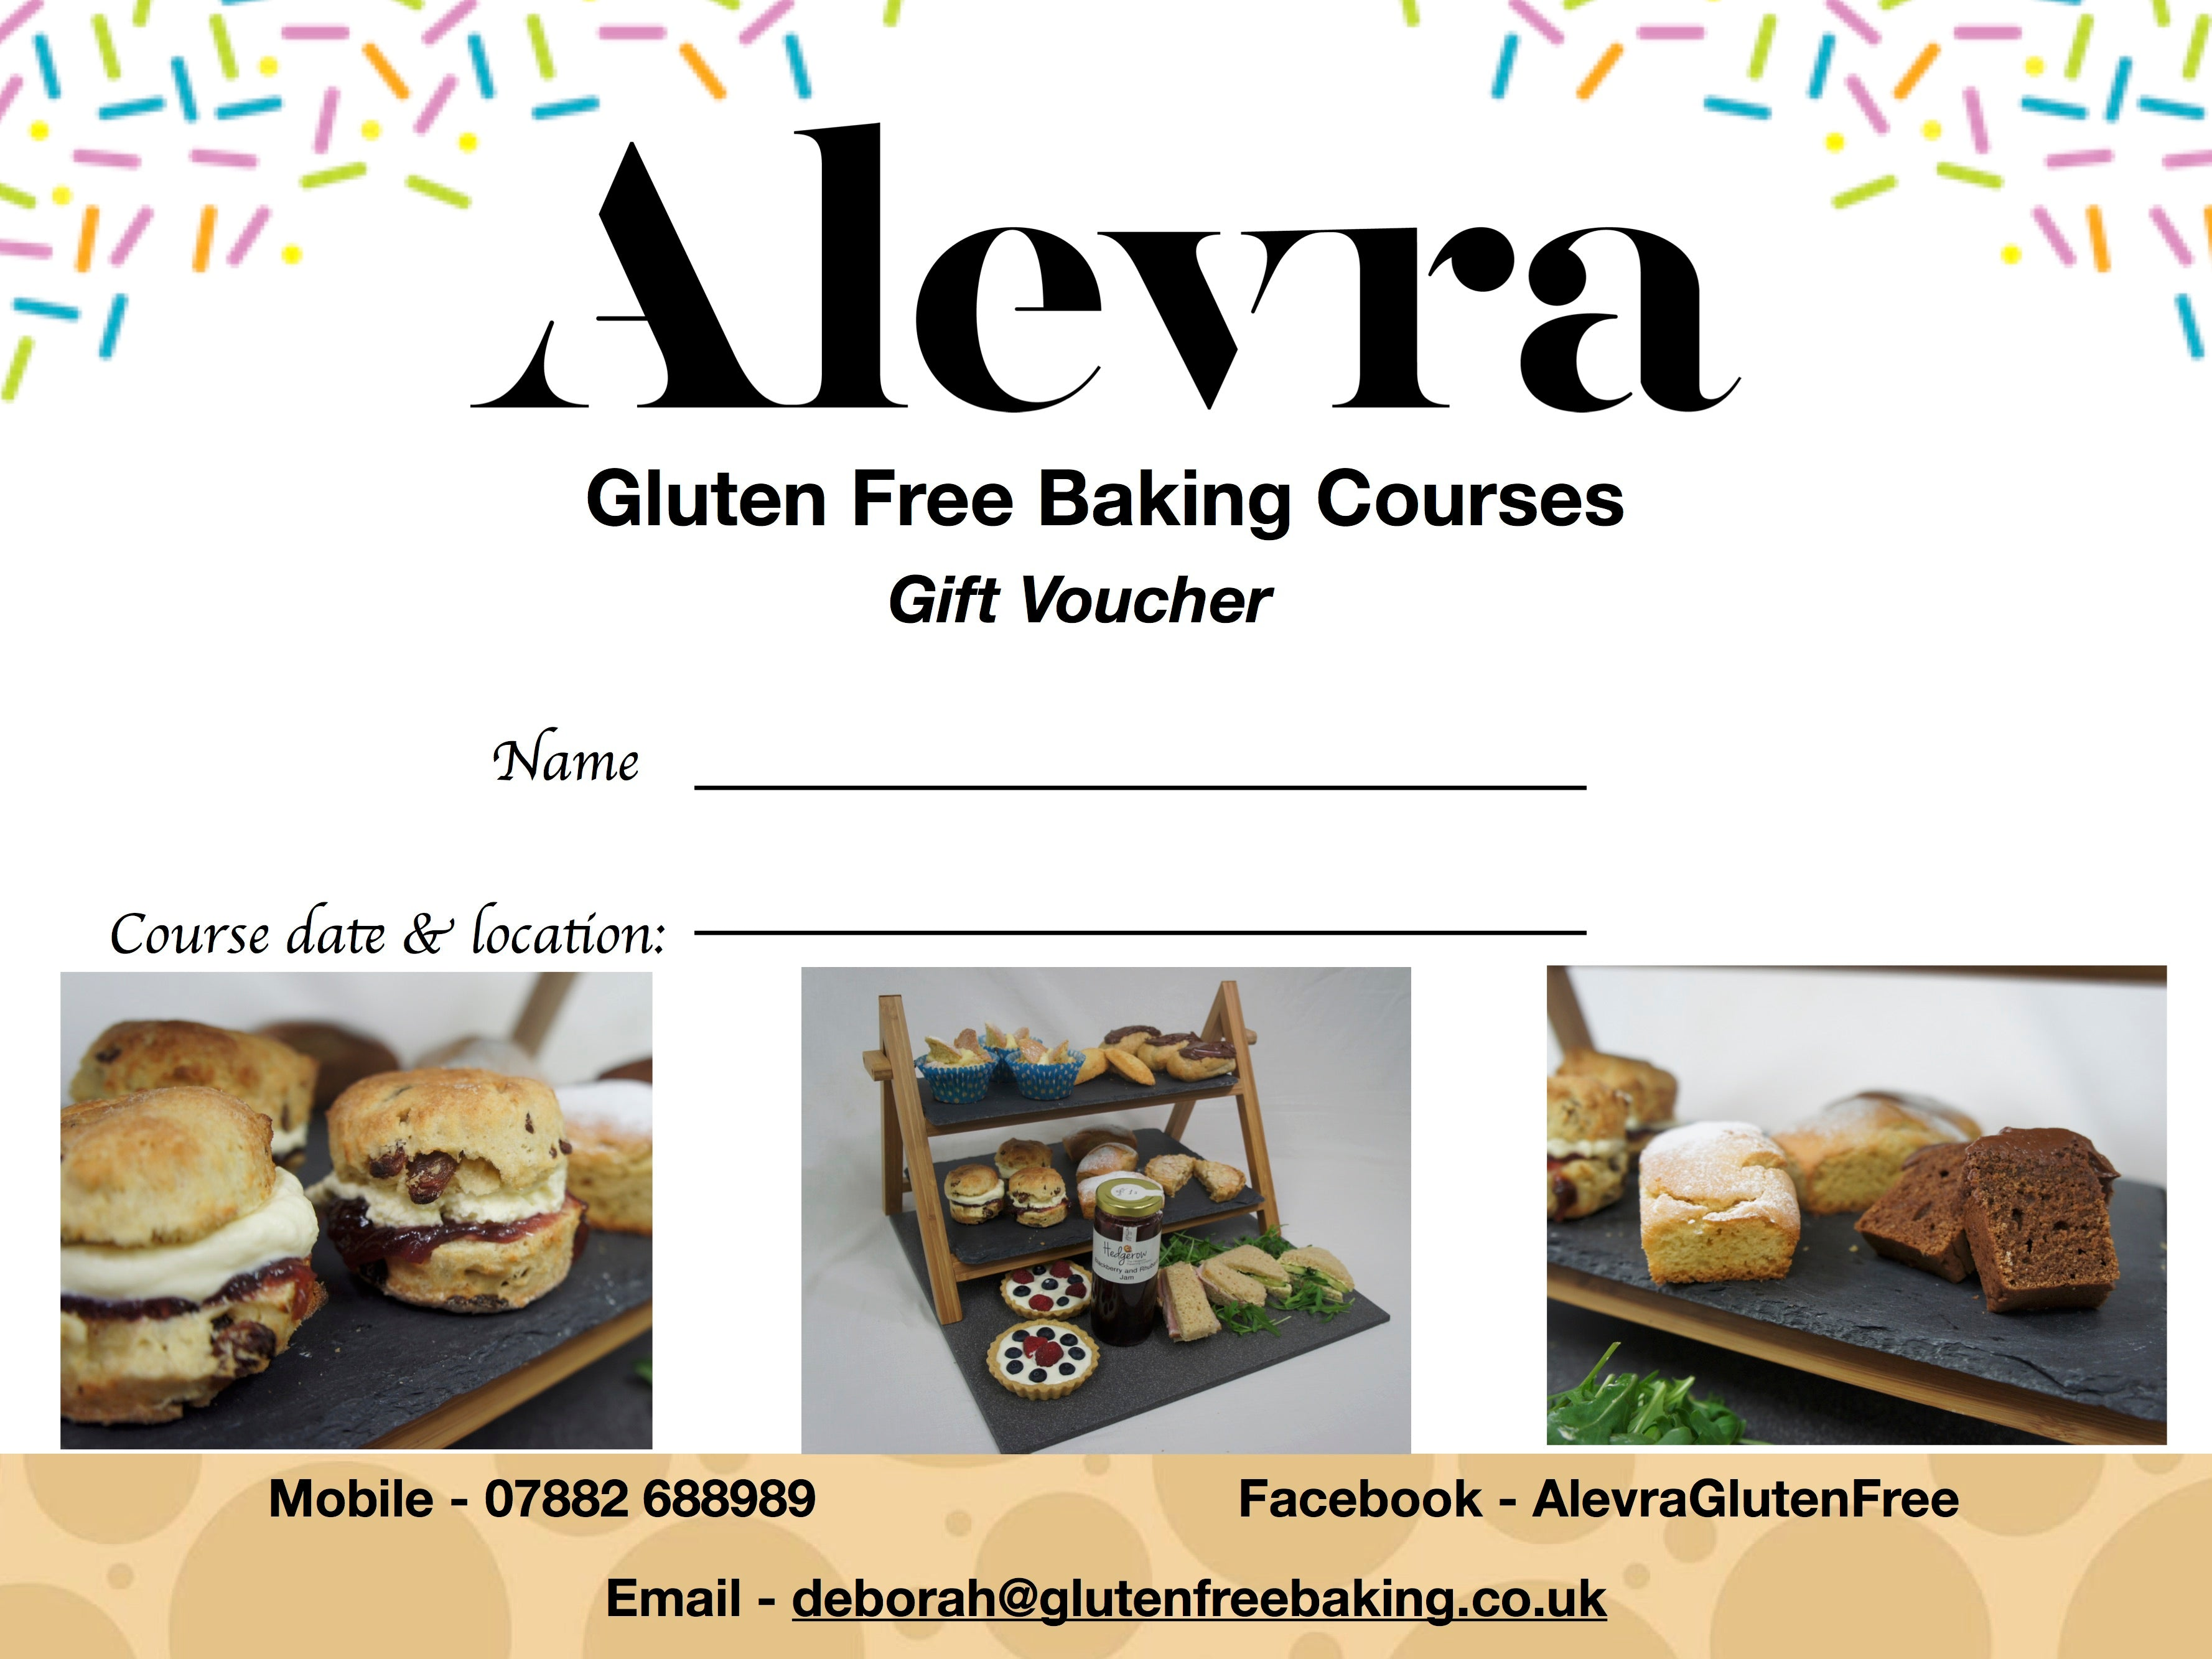 Gift Voucher for Gluten Free Baking Course in Harrogate/the Wirral